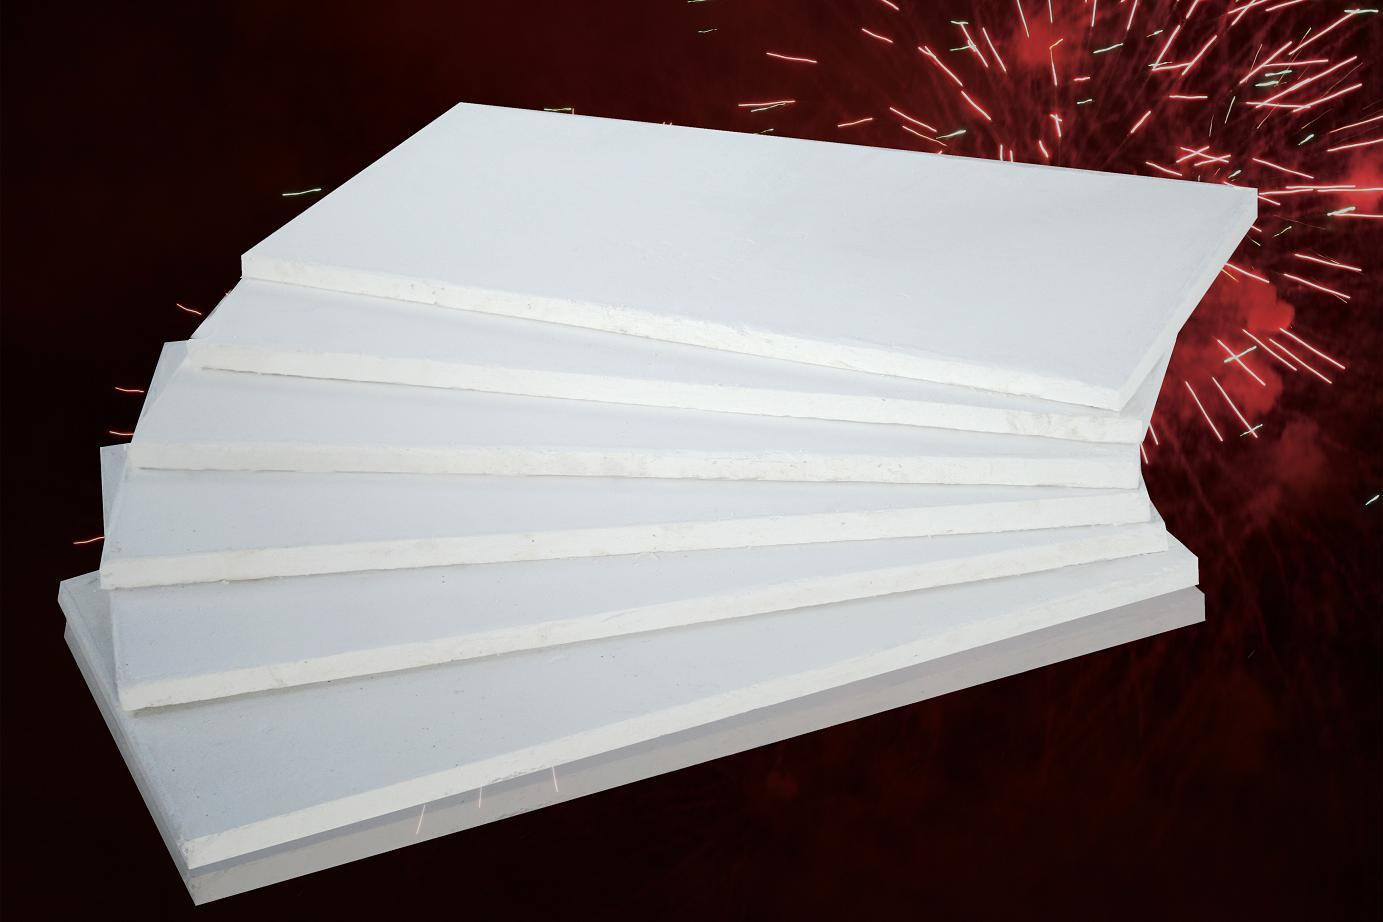 Calcium Silicate Board Home : China asbestos free calcium silicate insulation board yd